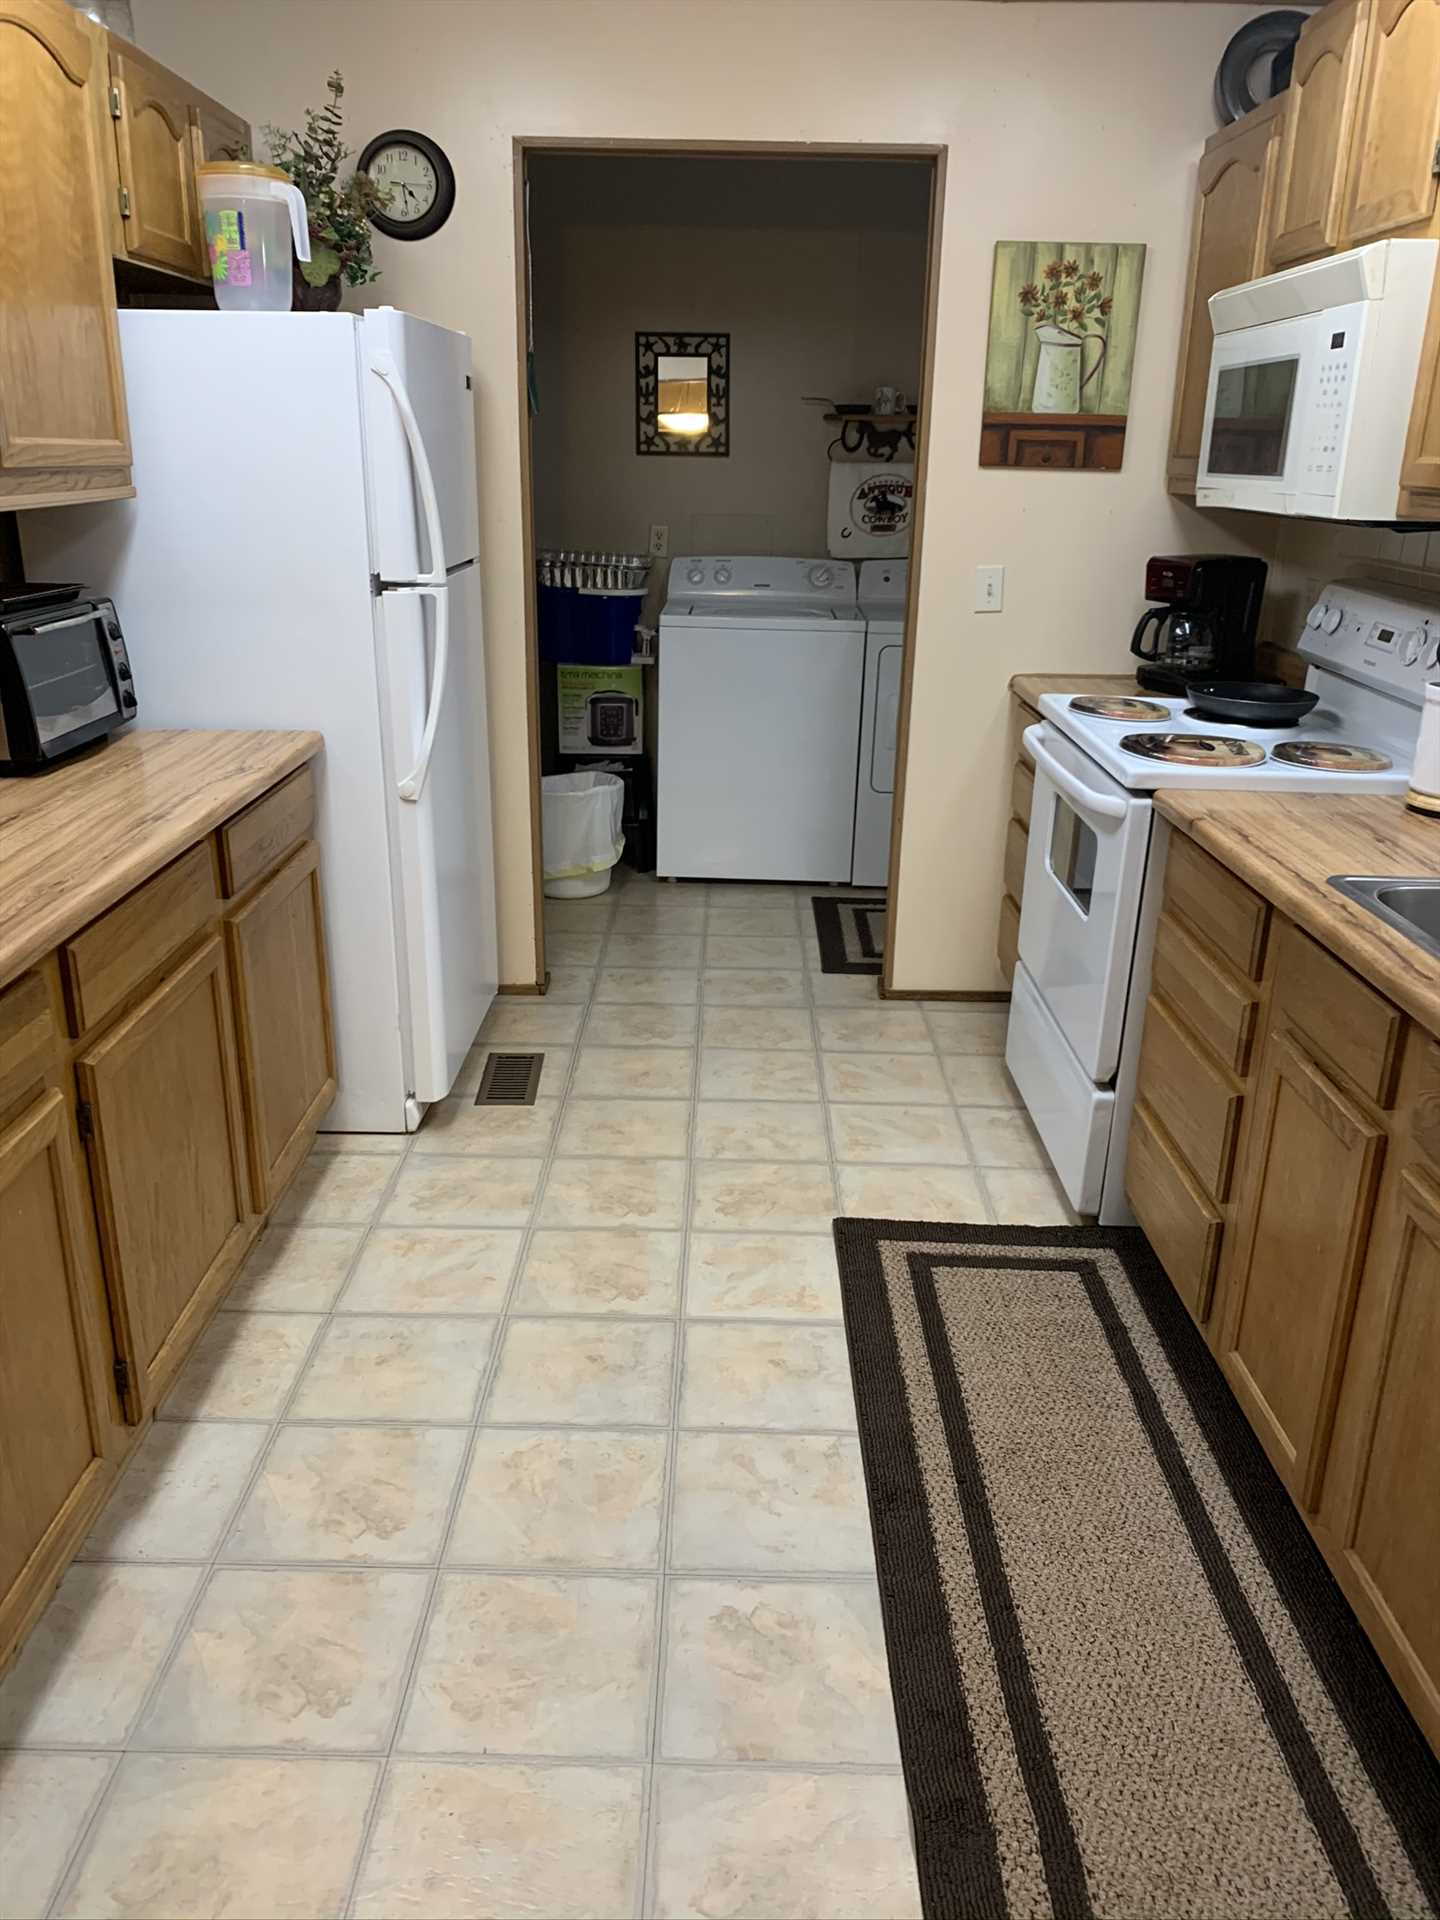 Beyond the fully decked-out kitchen, you'll also find a convenient utility room, complete with a washer and dryer!